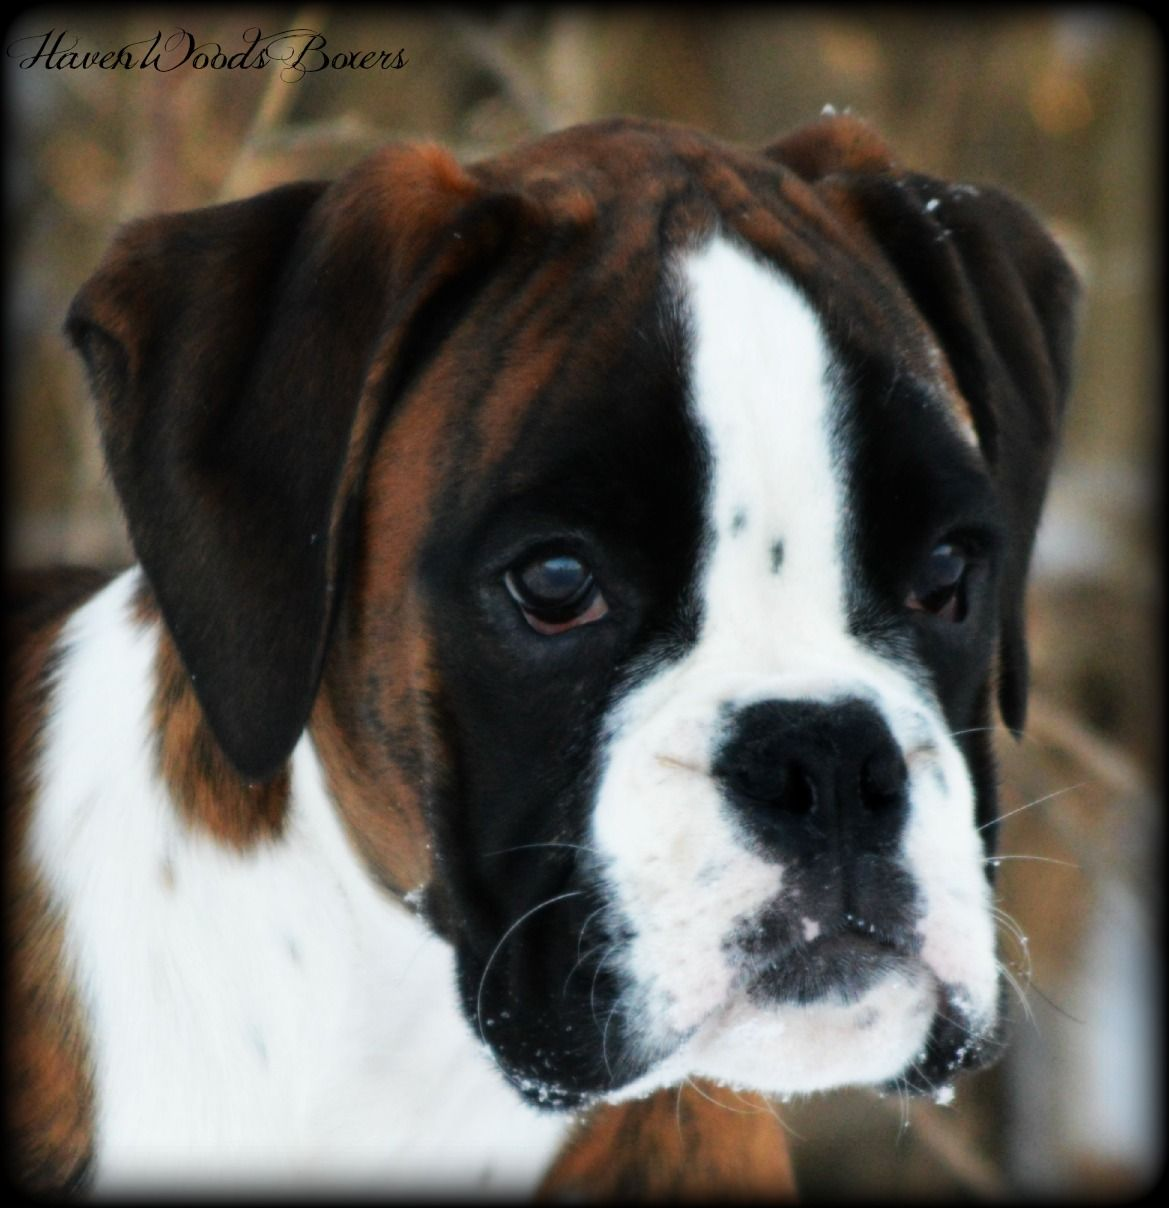 Havenwoods Boxers Top Quality Akc German And American Boxers Based In Central Ohio Show Quality Working German Boxers Health Boxer Welpe Brindle Boxer Hunde